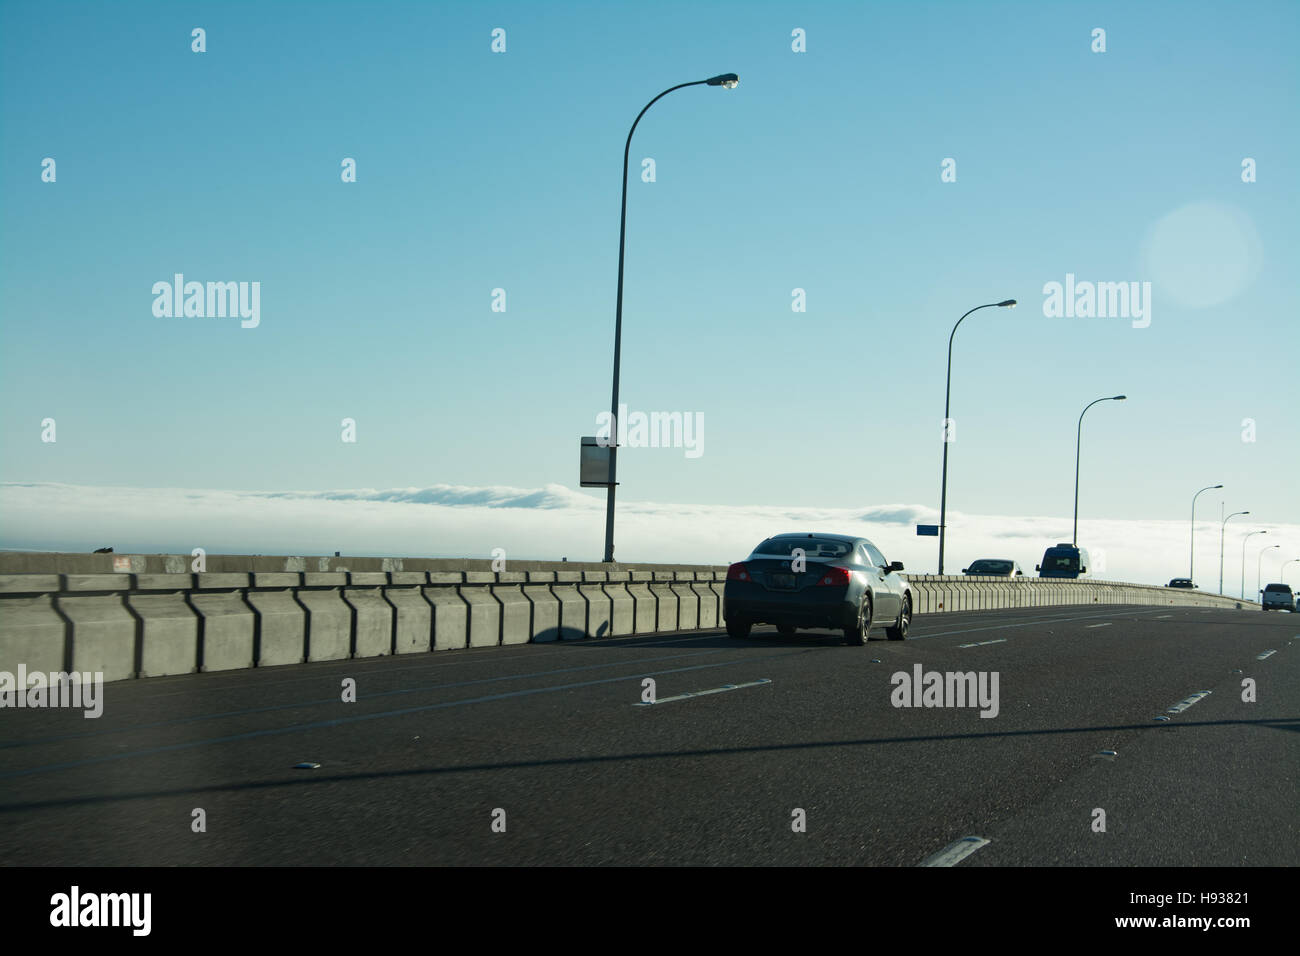 Crossing bridge appears to be above the clouds - Stock Image